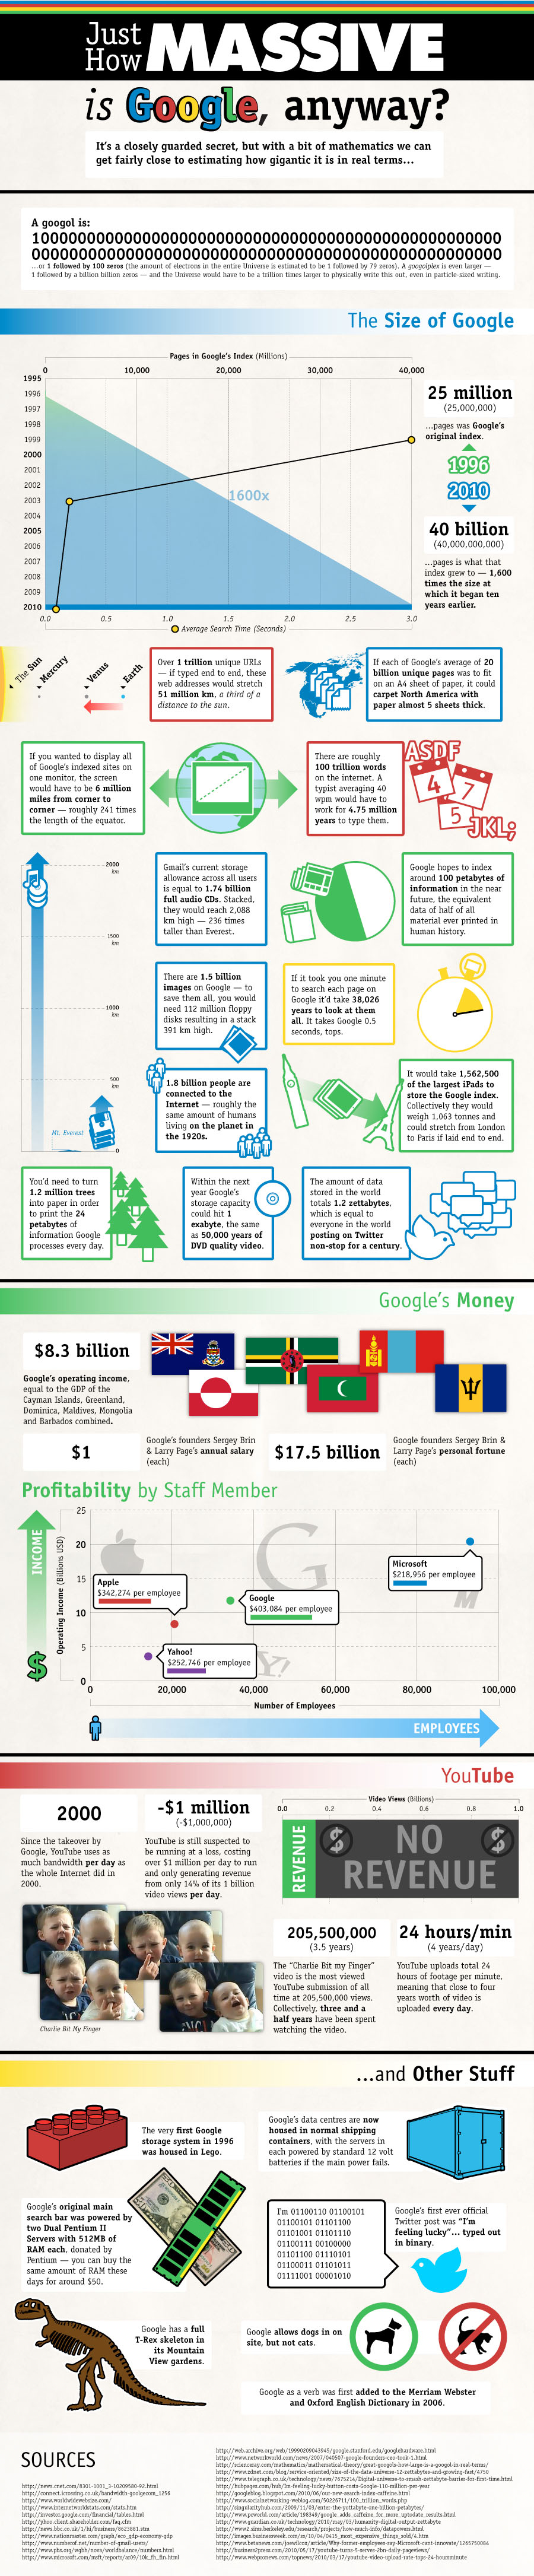 Just How Massive Is Google?